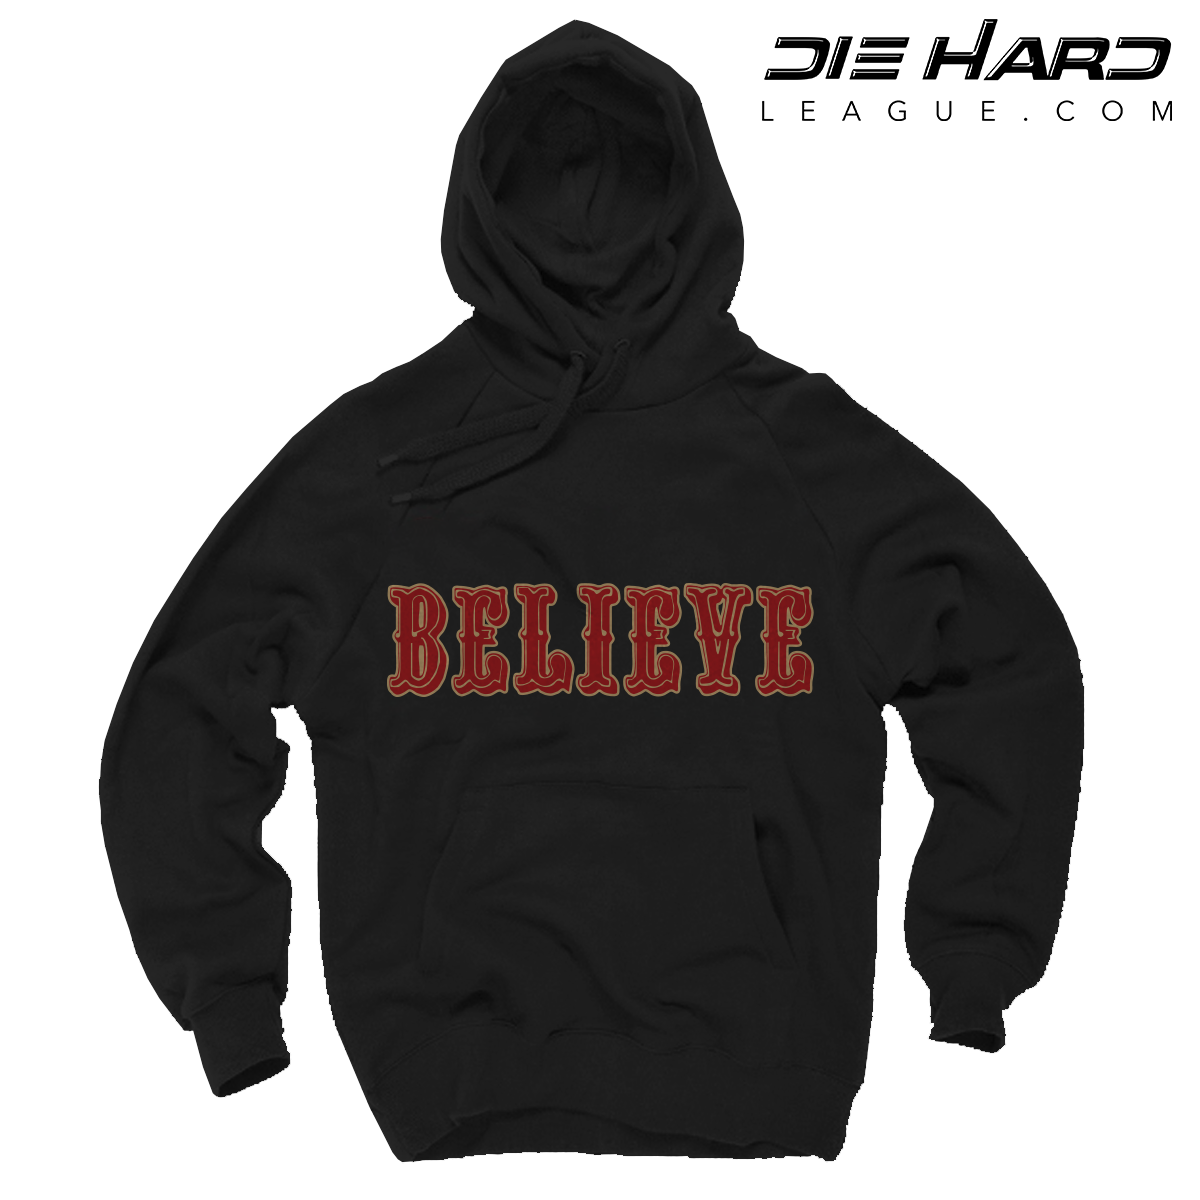 Shop. Home San Francisco 49ers Shop 49ers Sweaters 49er Hoodies – San  Francisco 49ers BELIEVE Black Hoodie 11f5bc610